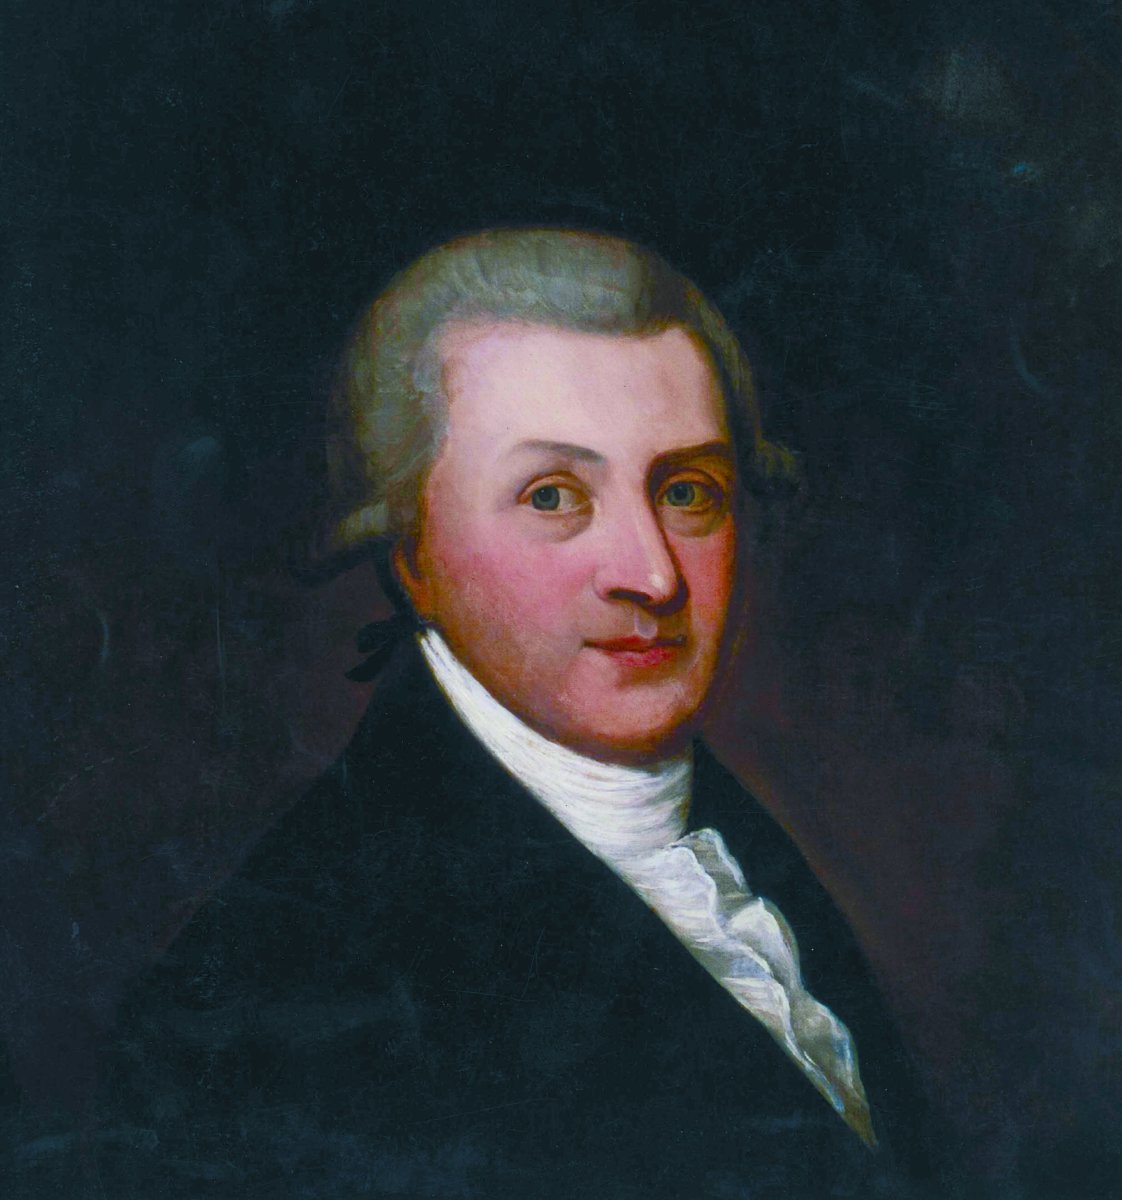 The founding brewer, Arthur Guinness.